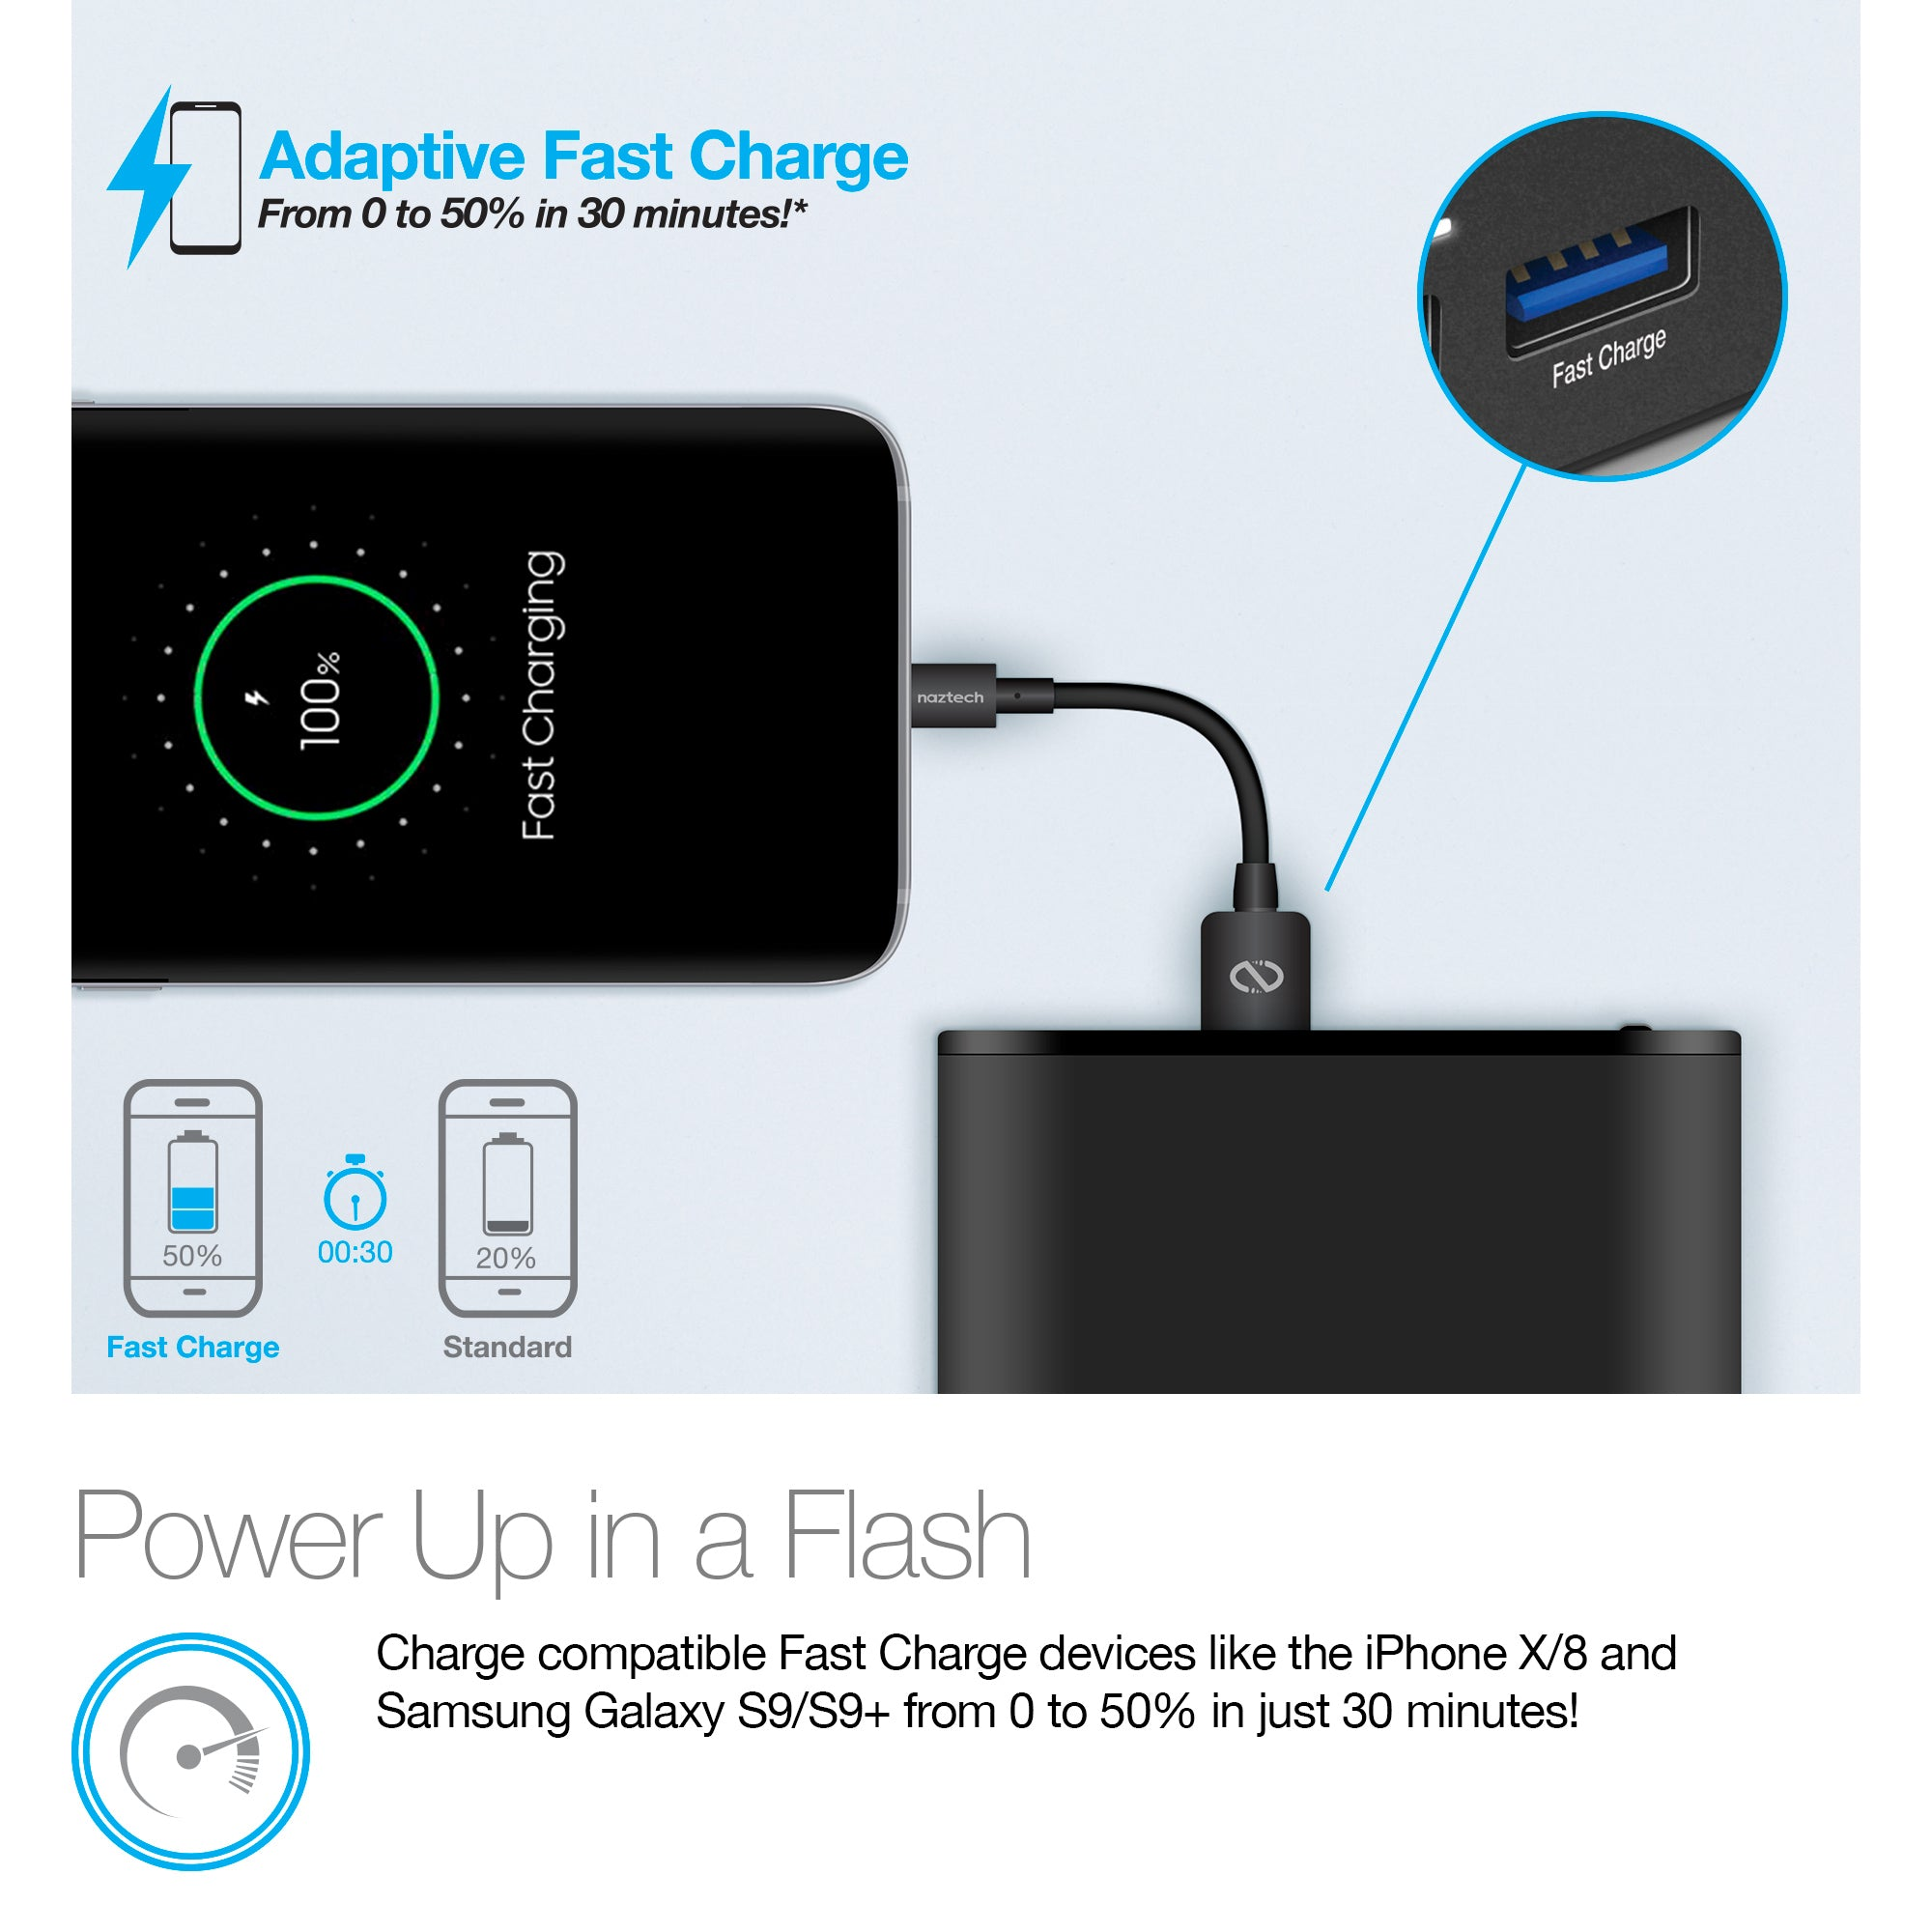 18W USB-C Power Delivery + Adaptive Fast Charge Portable Battery